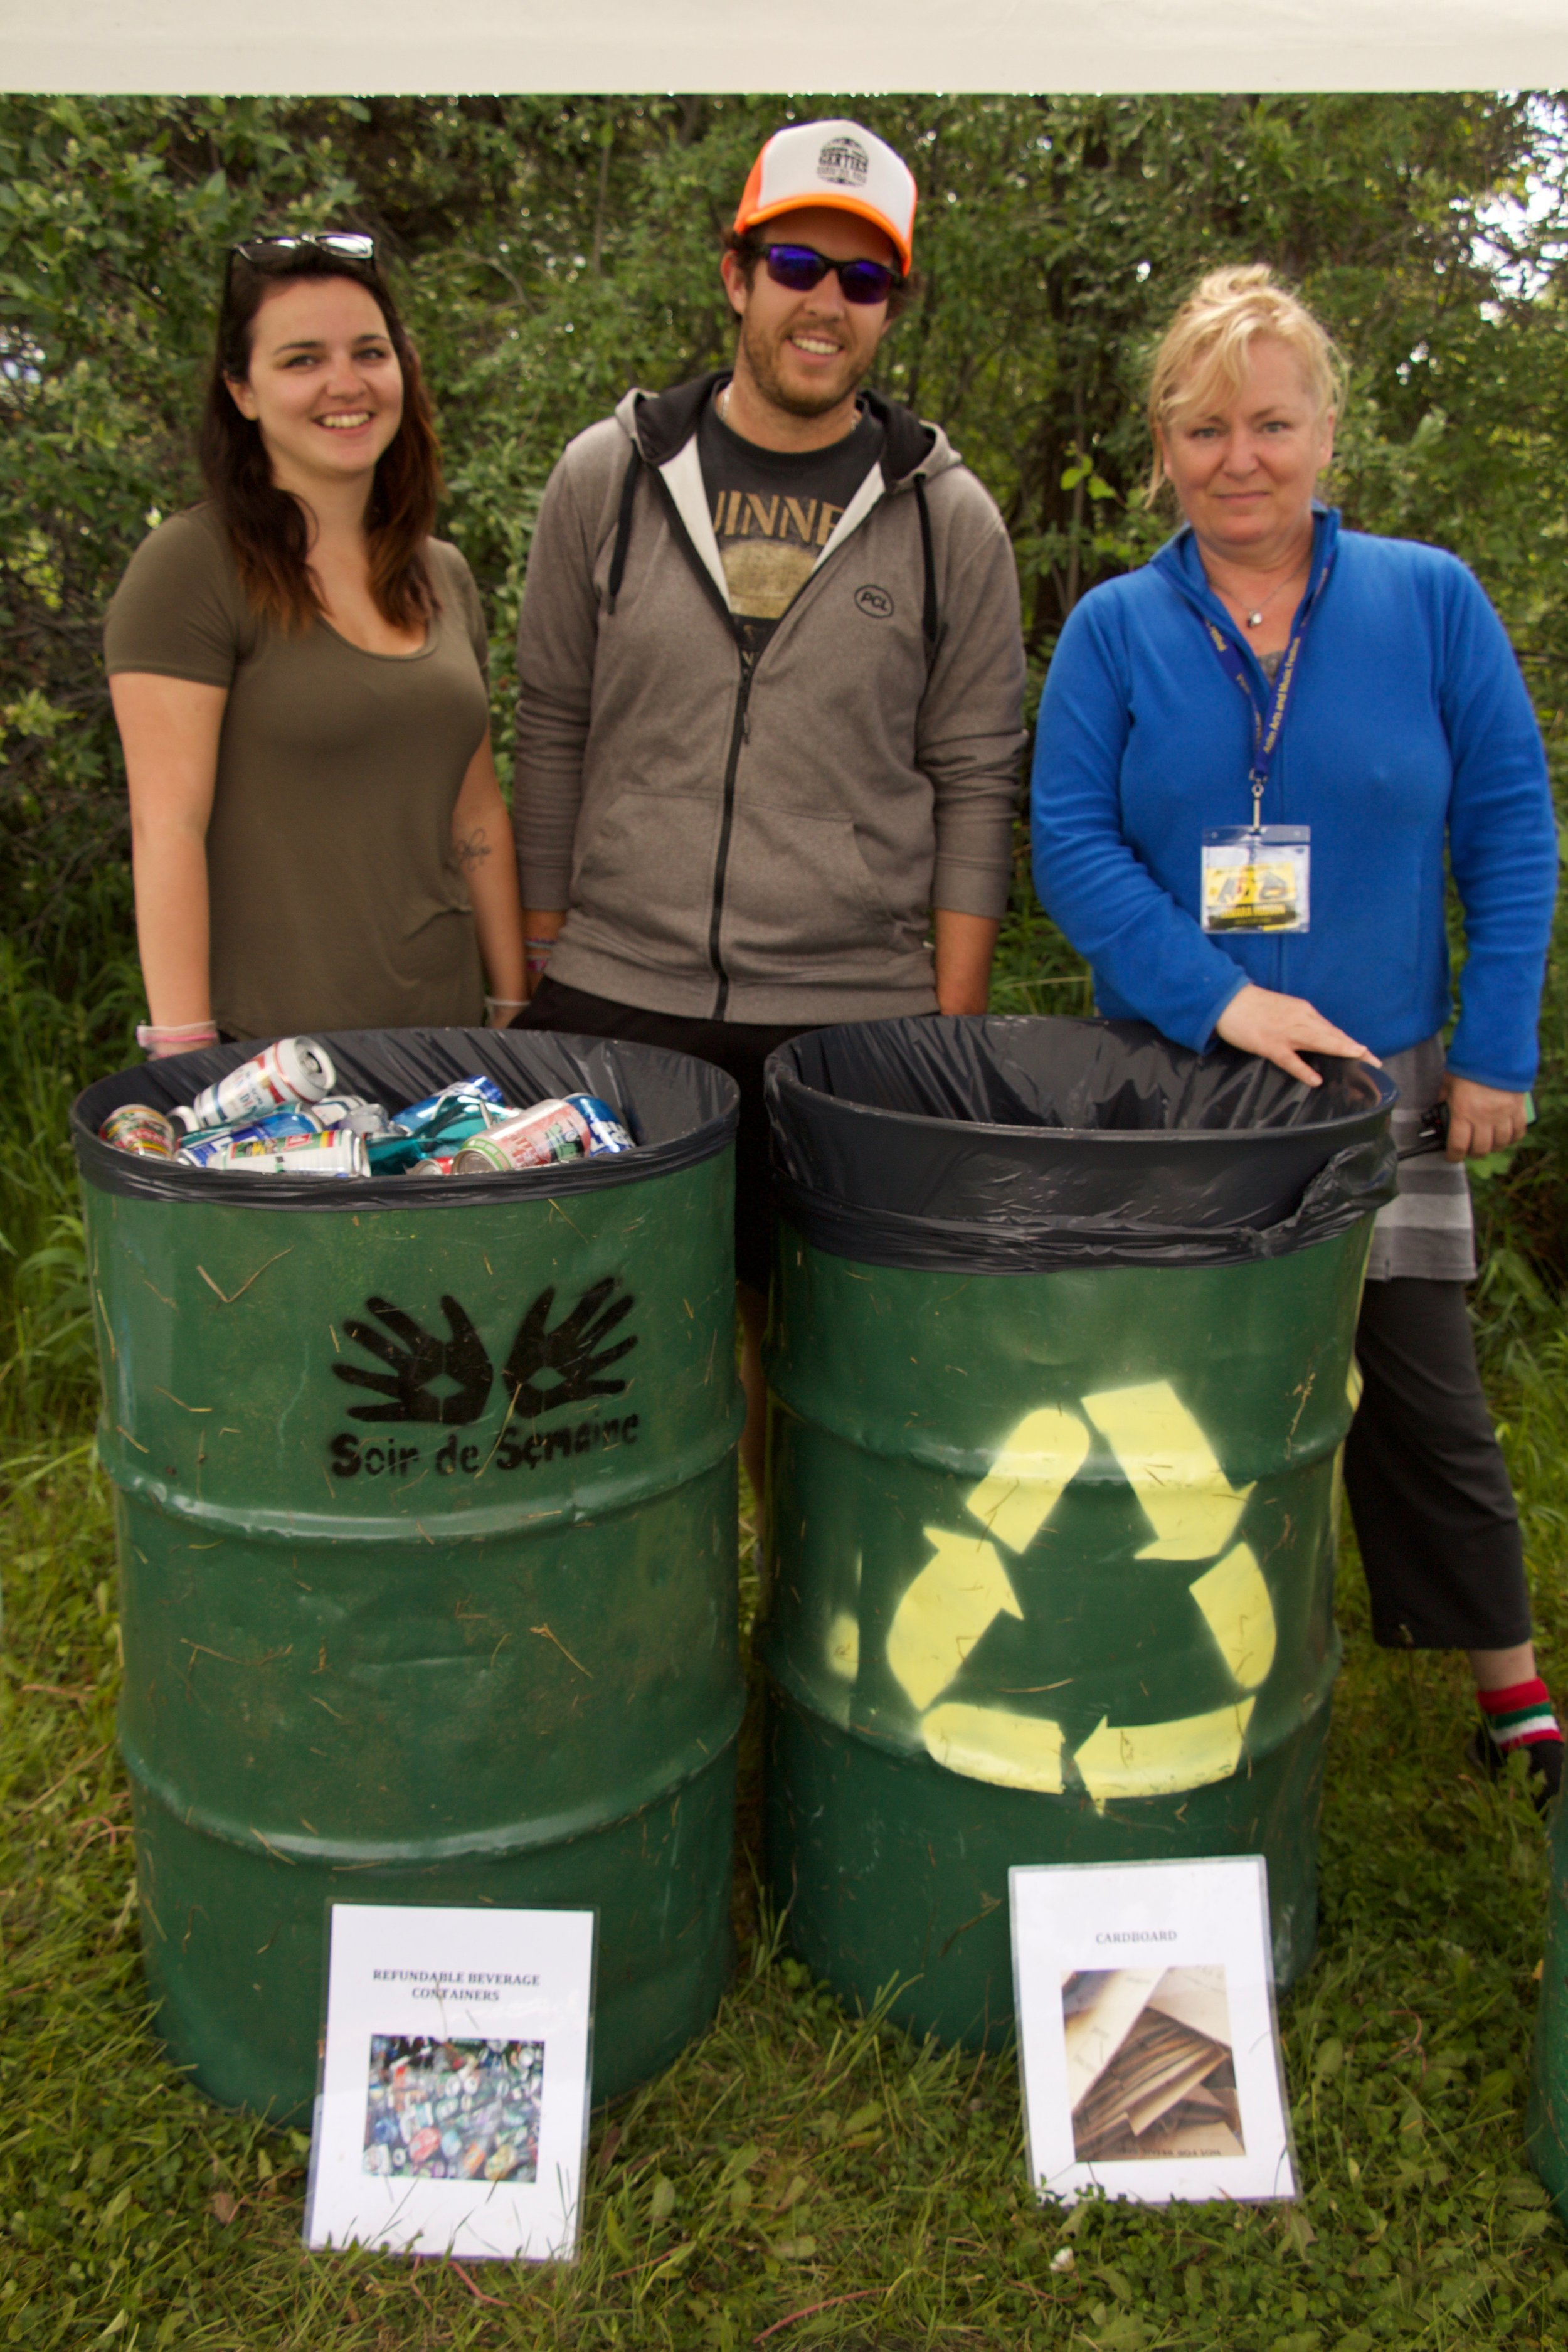 The green team at the Atlin Arts and Music Festival sorts through the recycling. Marissa Dumas and Matt Quinton are volunteers on the team (left and centre), Tamara Hudson (right) is the green team leader.